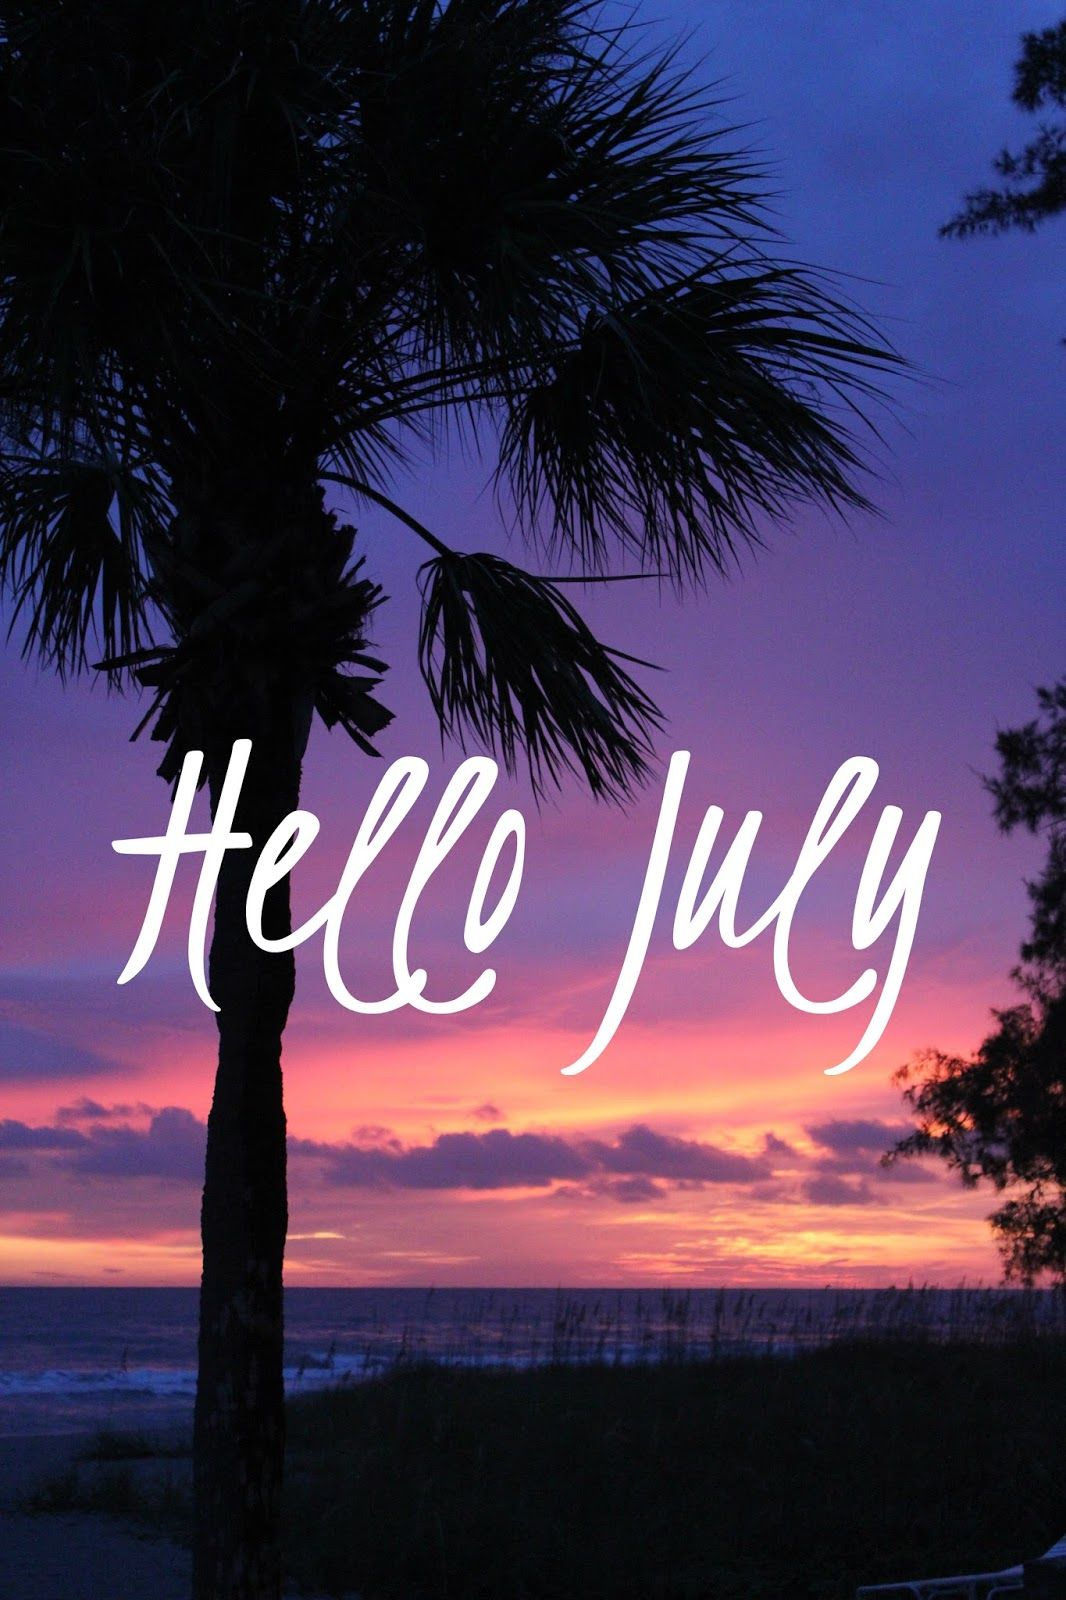 Cute Love Sayings Wallpaper Hello July Pictures Photos And Images For Facebook